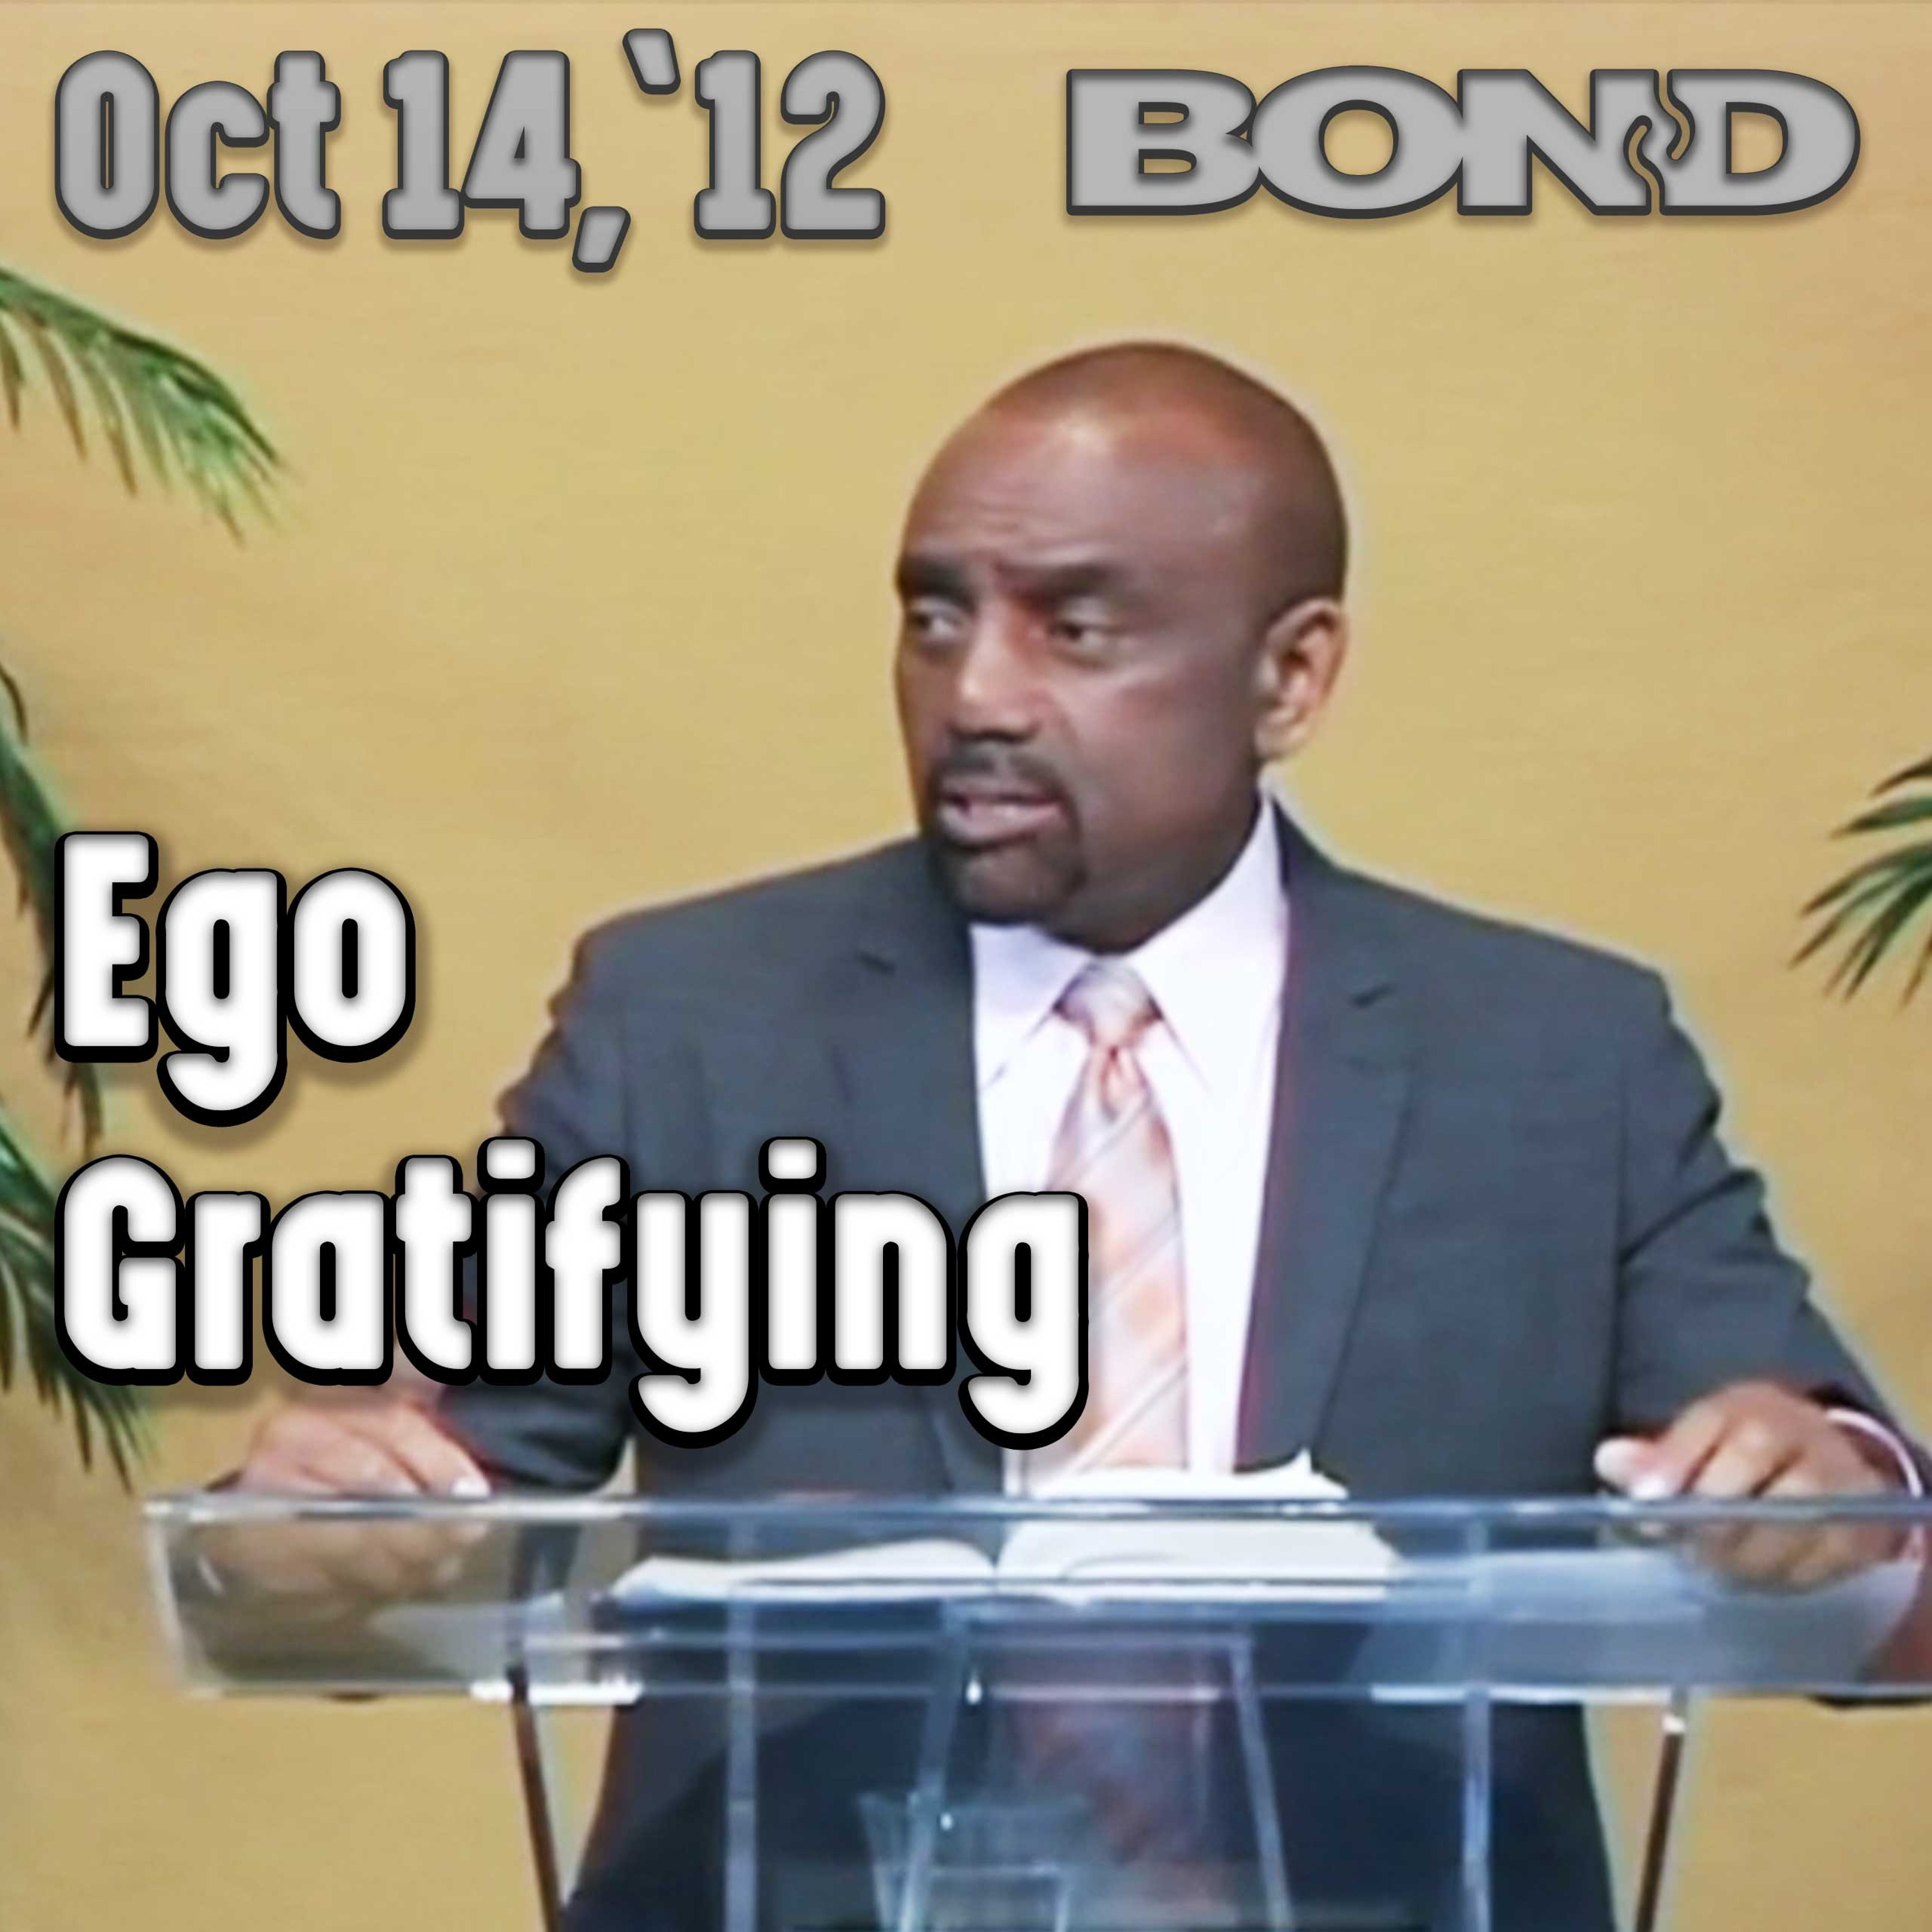 10/14/12 Have You Ever Done Anything Without Any Ego Gratification?